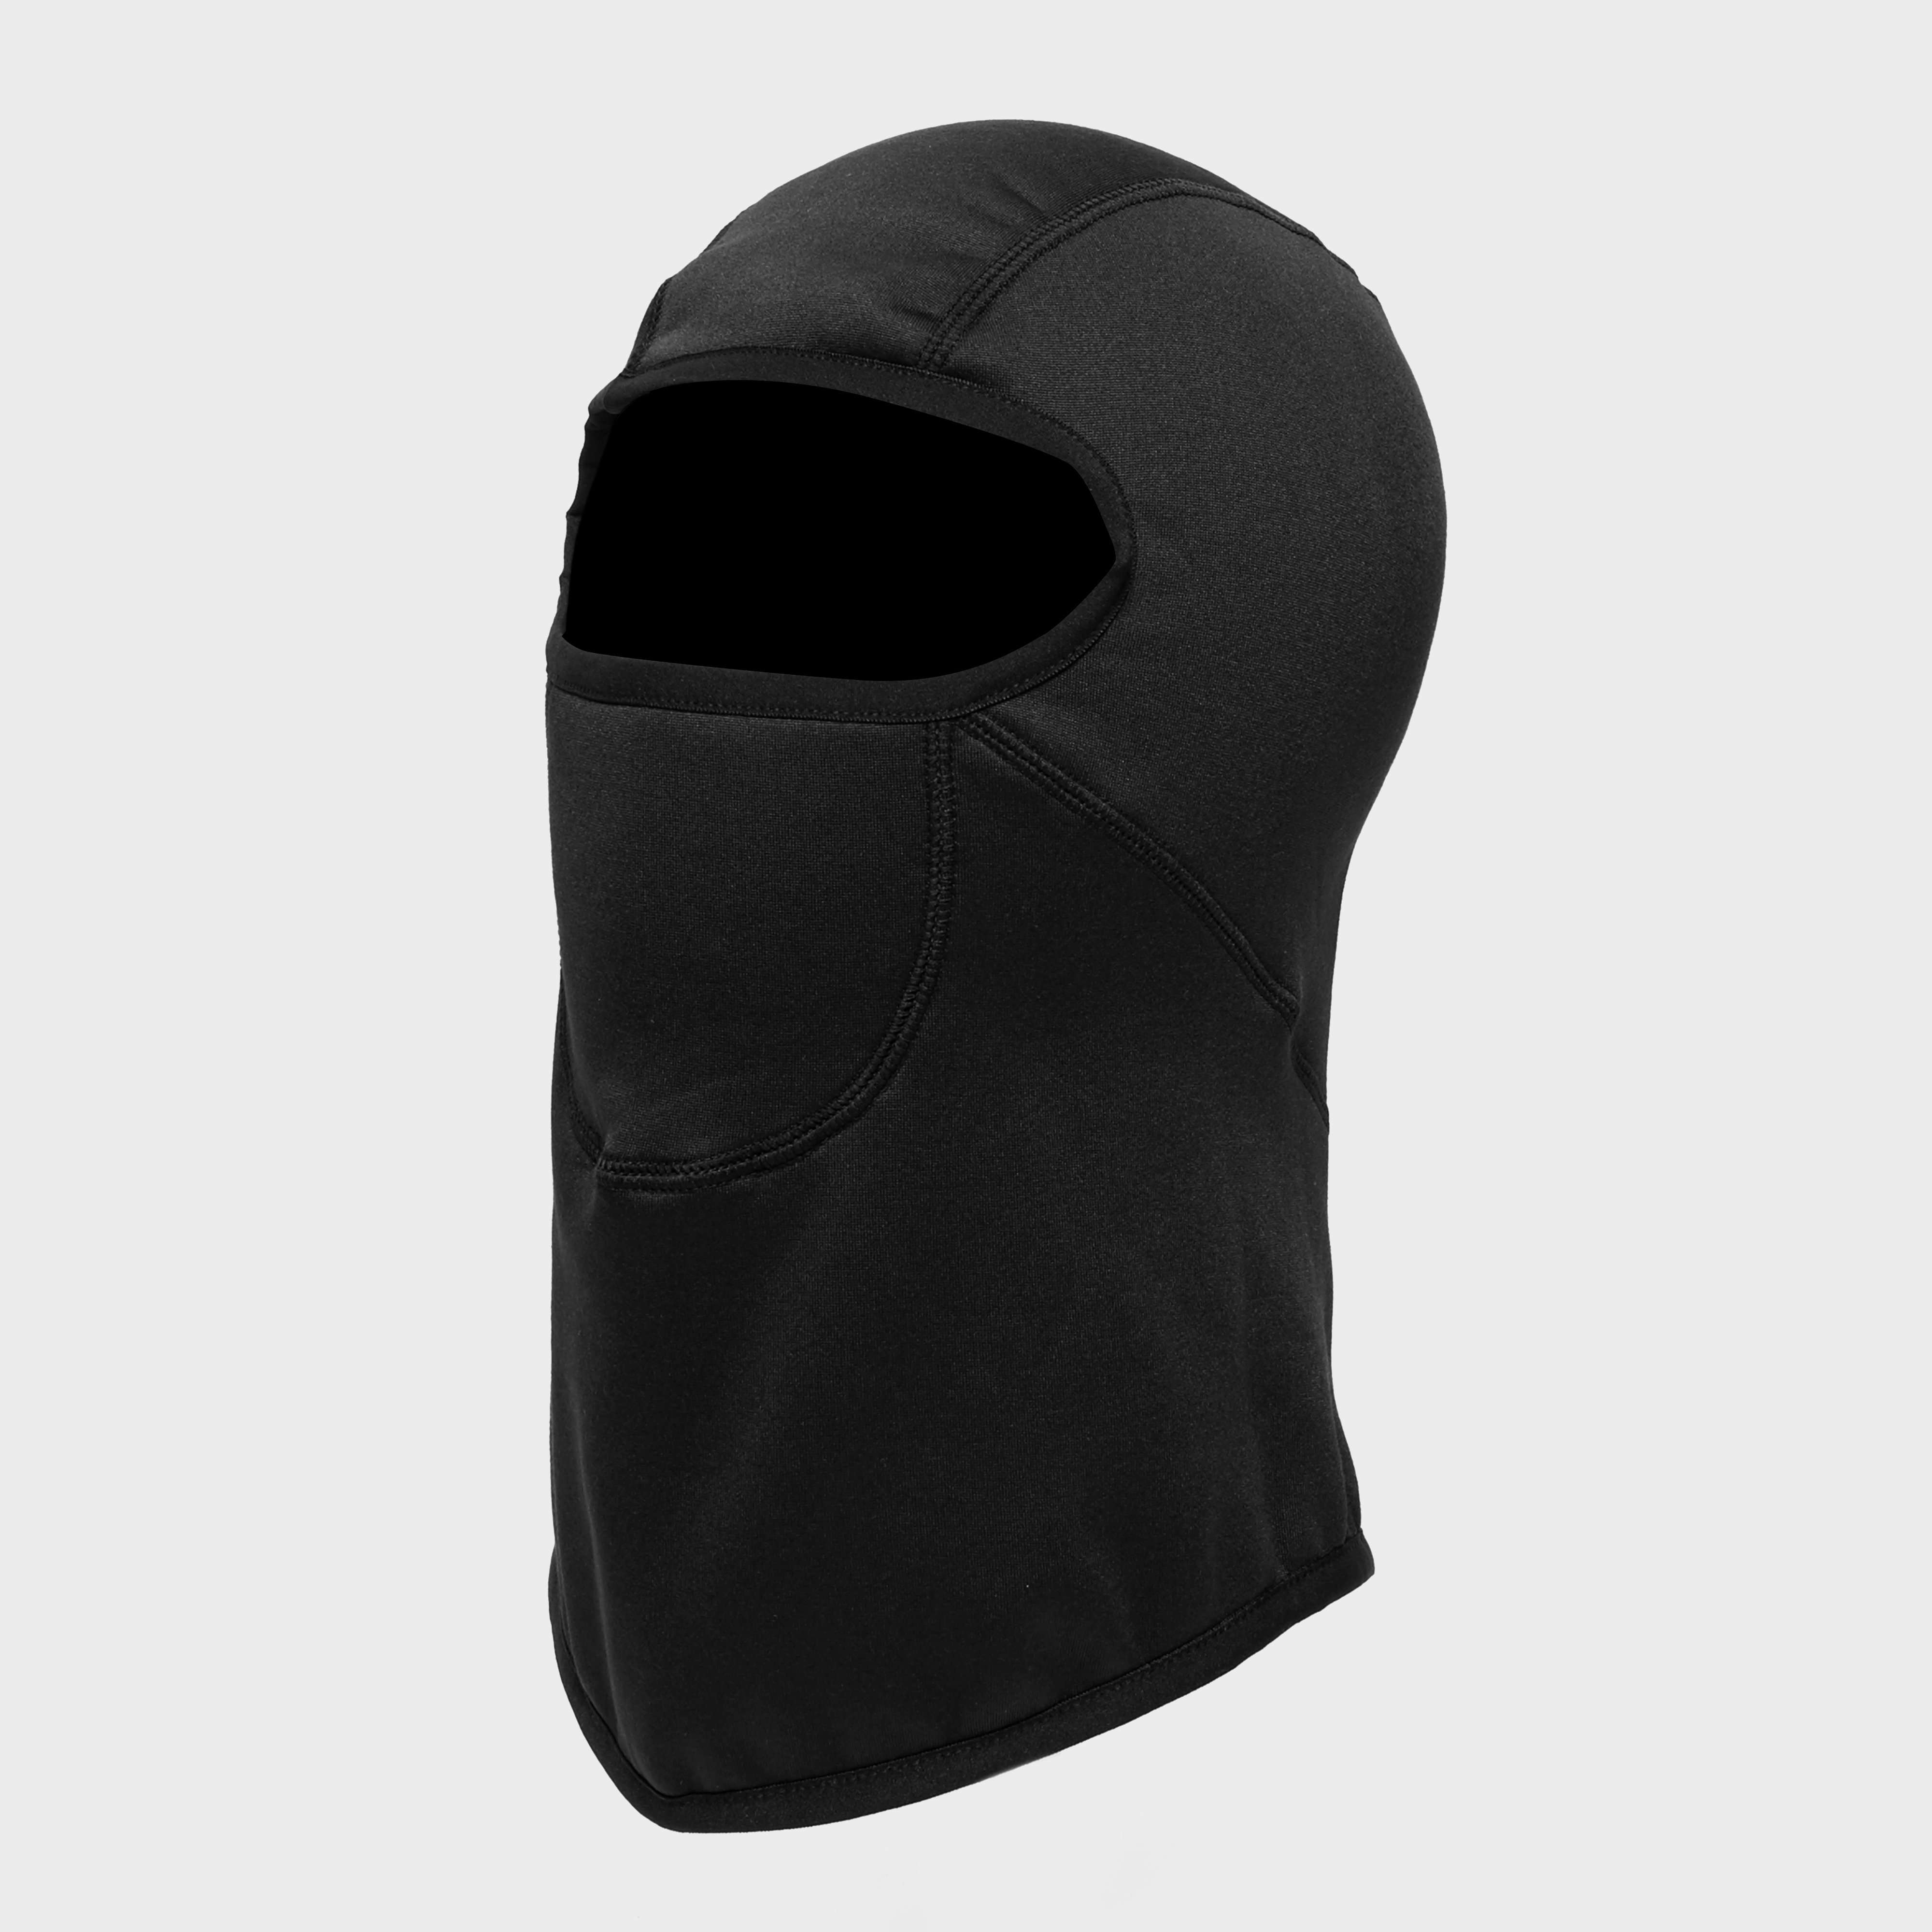 TECHNICALS Men's Balaclava